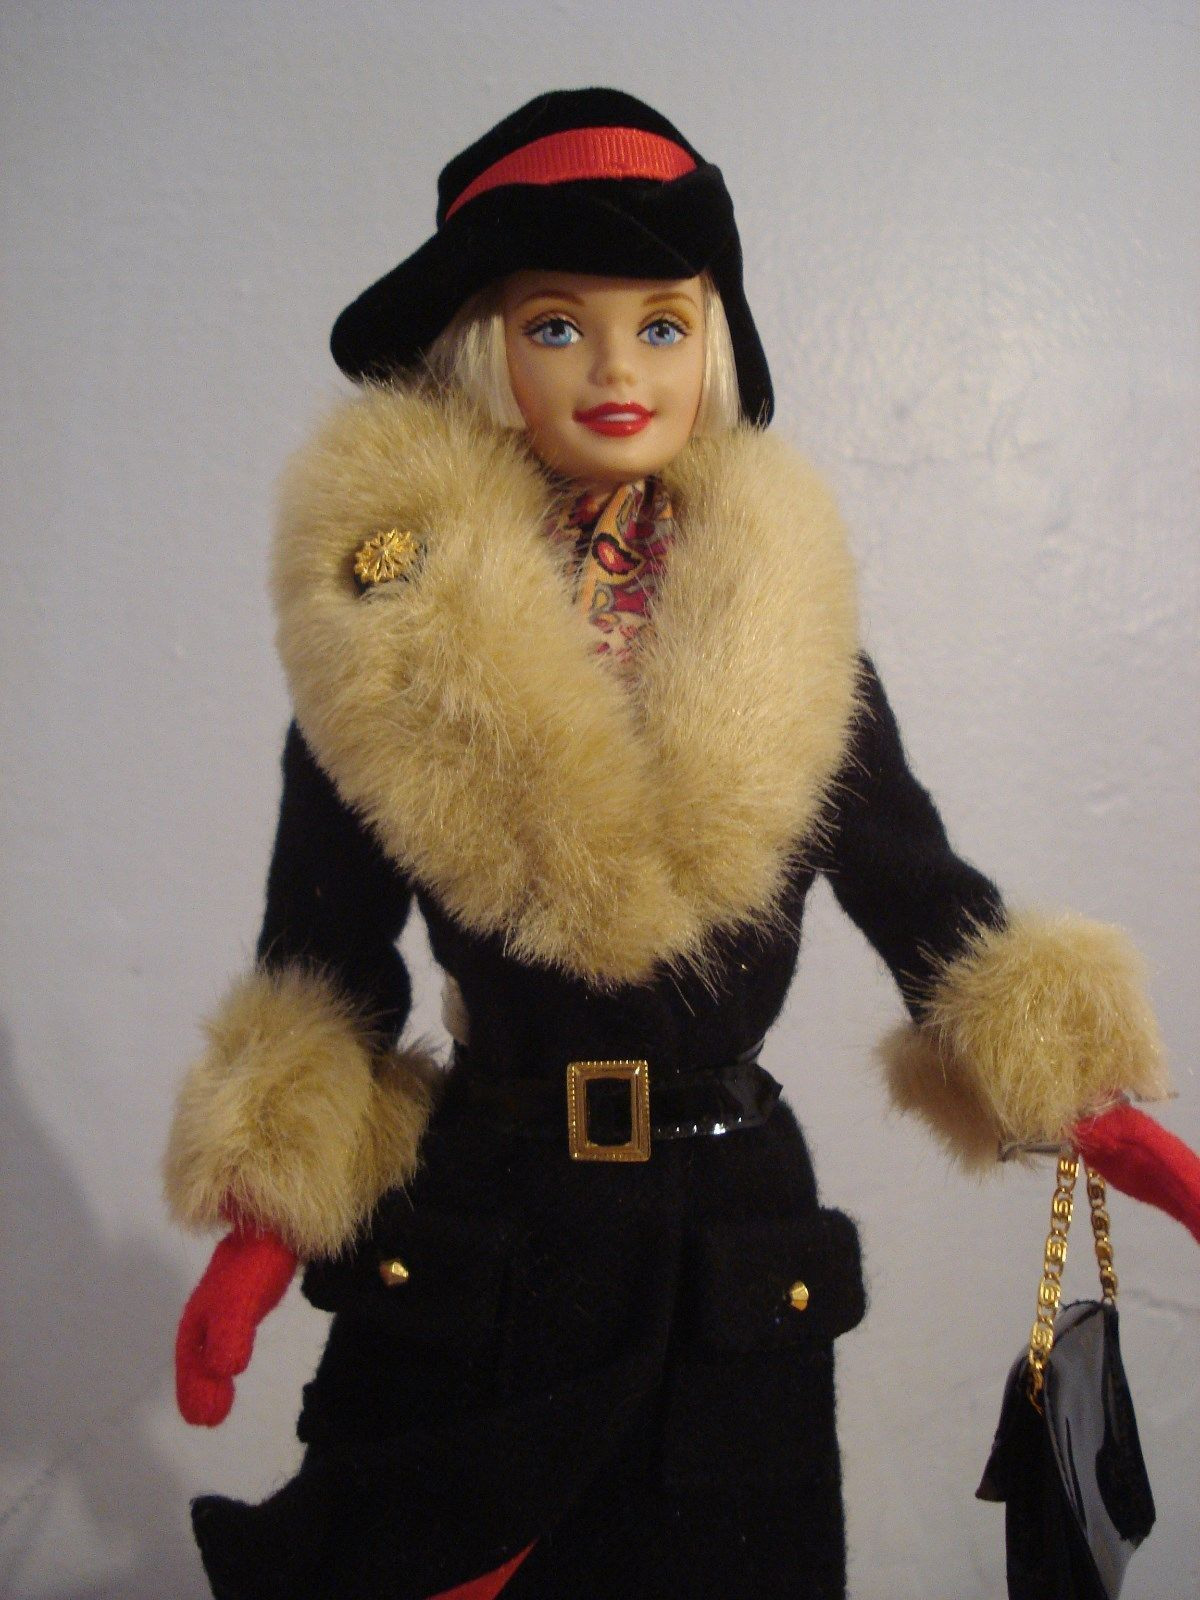 TOP BARBIE MATTEL DOLL WINTER IN NEW YORK BLACK FAUX FUR COAT JACKET ACCESSORY